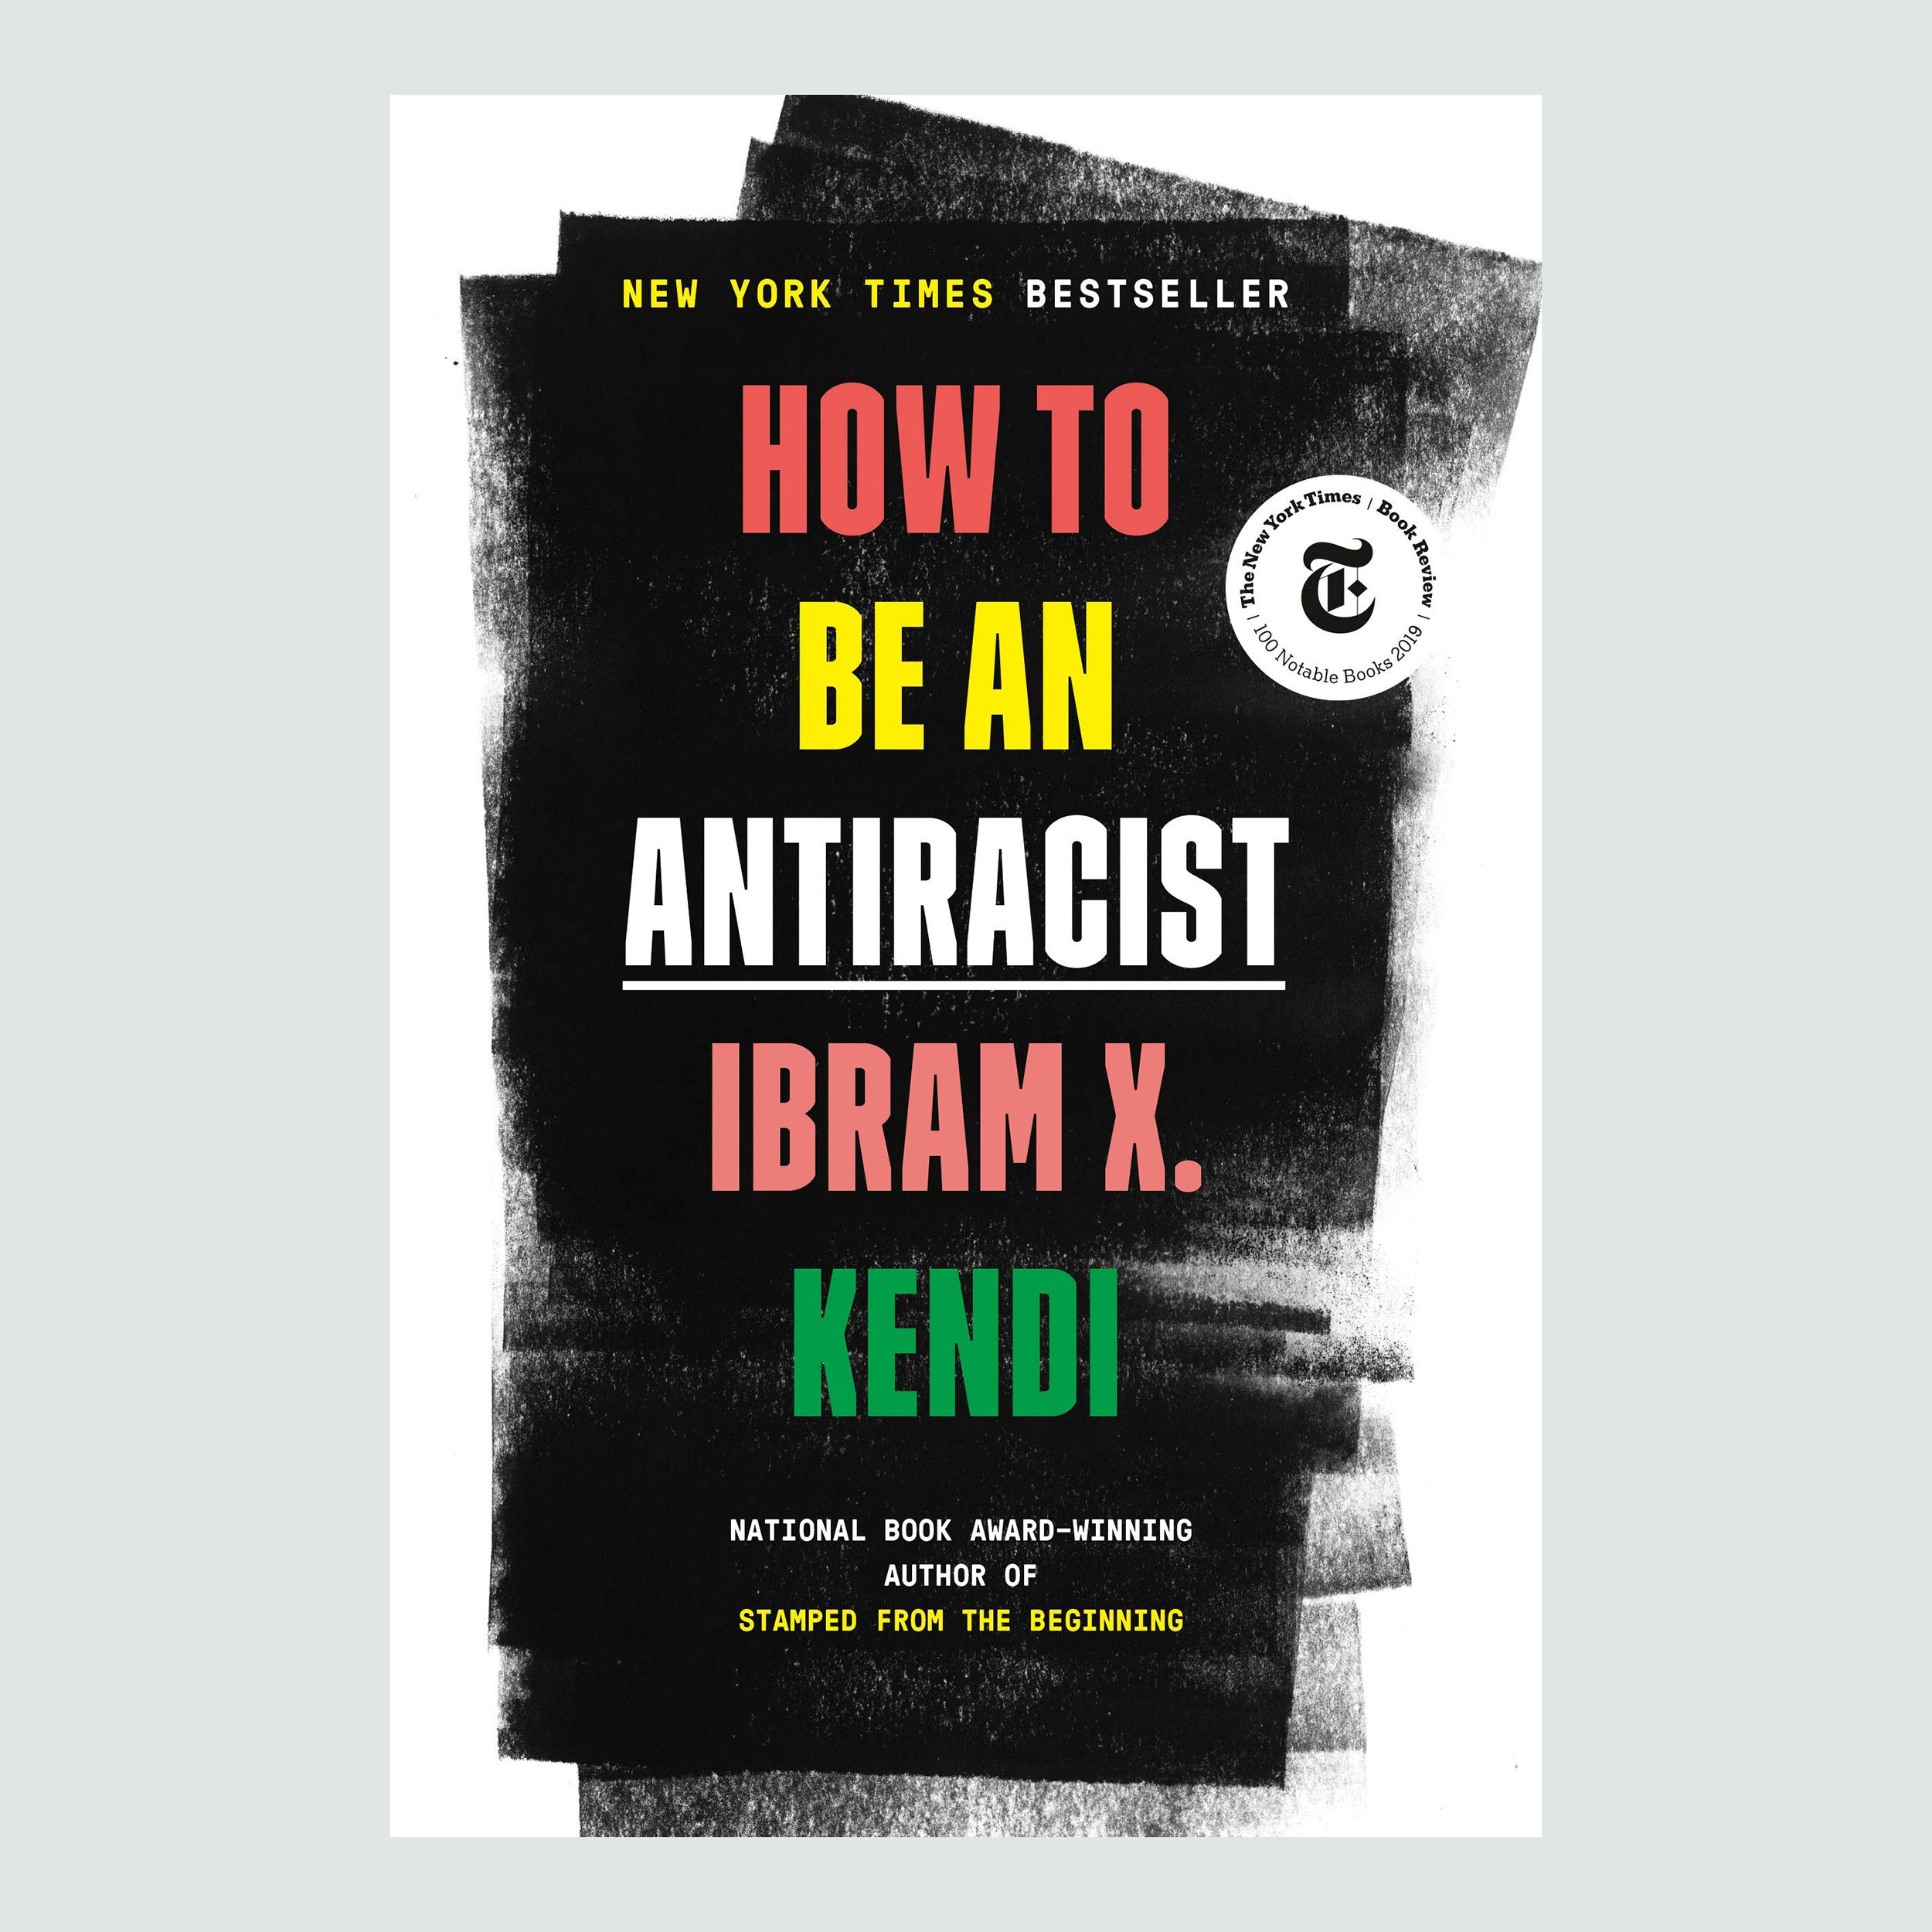 How to Be an Antiracist book